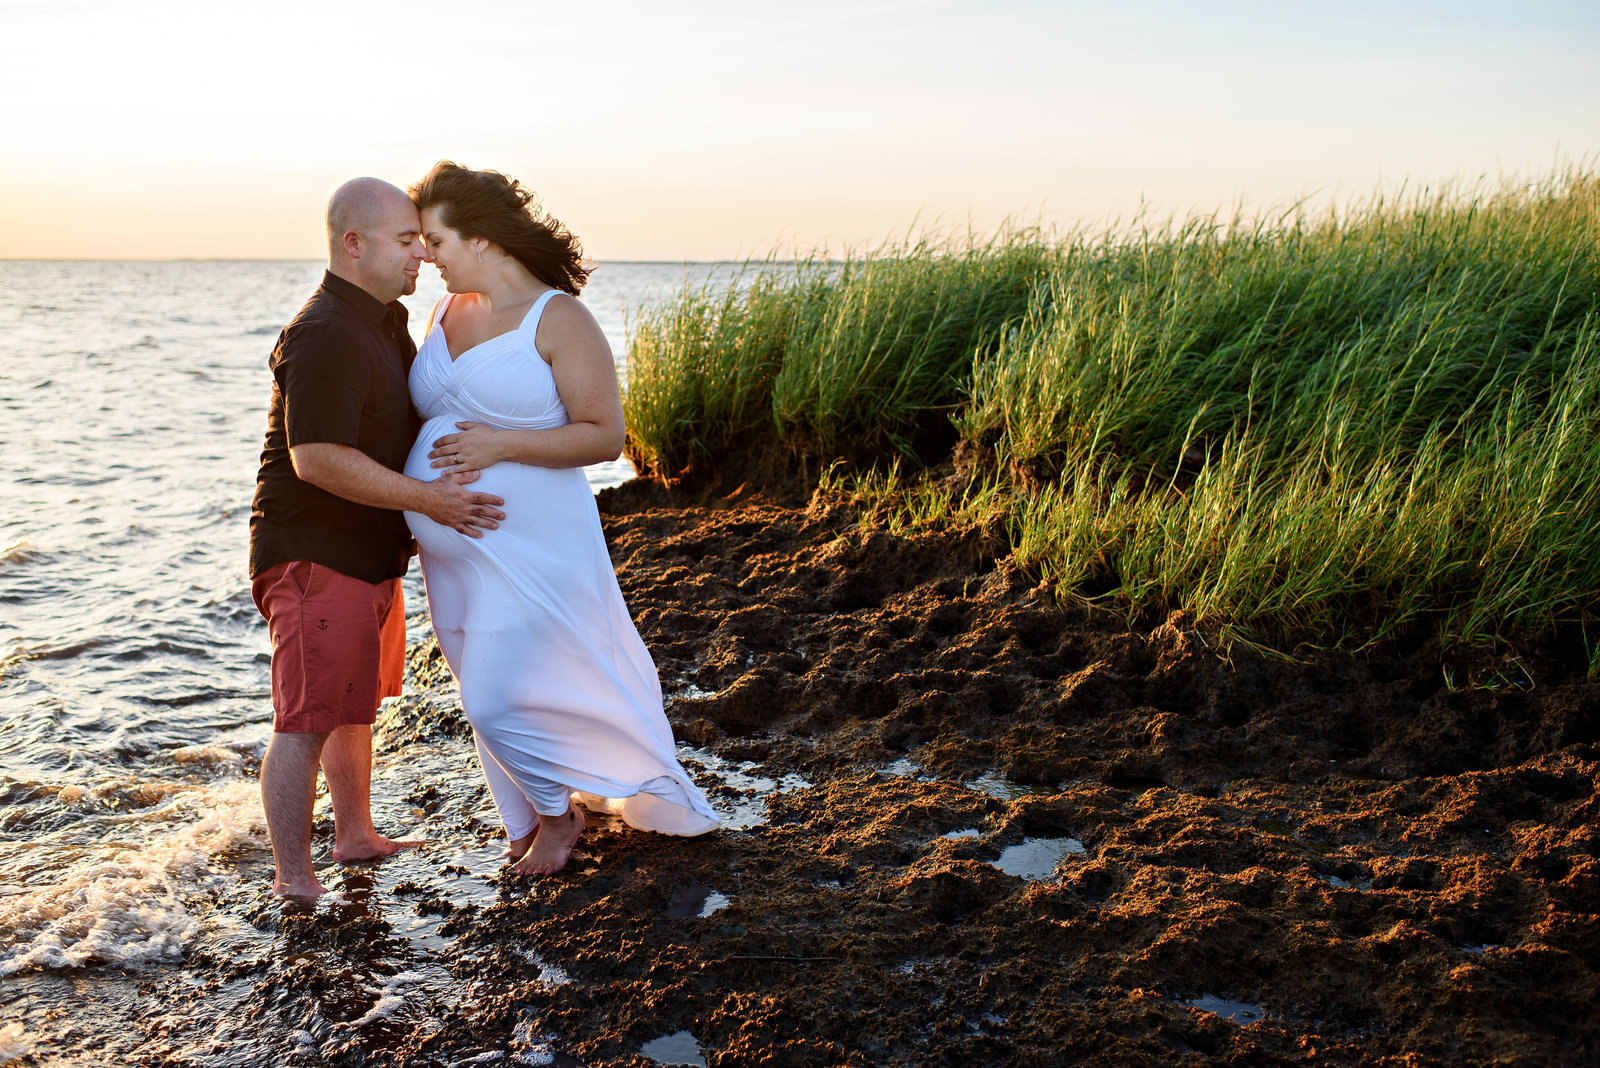 A pregnant couple stand in the water at the beach and hold each other.